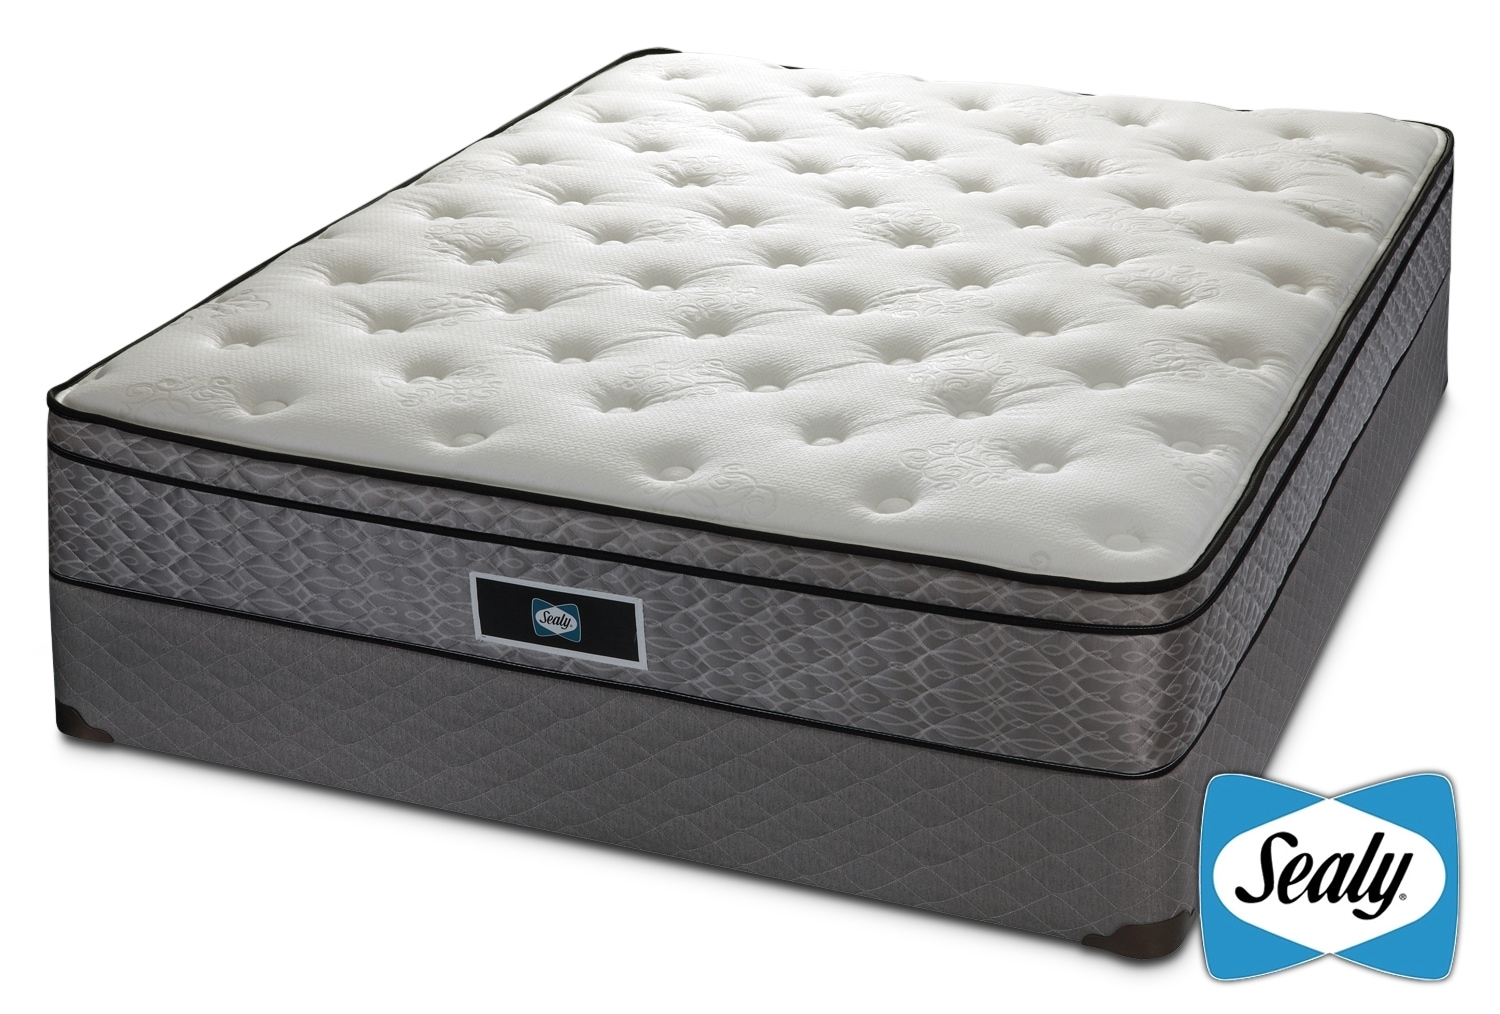 Split queen mattress sale bed mattress sale Queen mattress sets sale